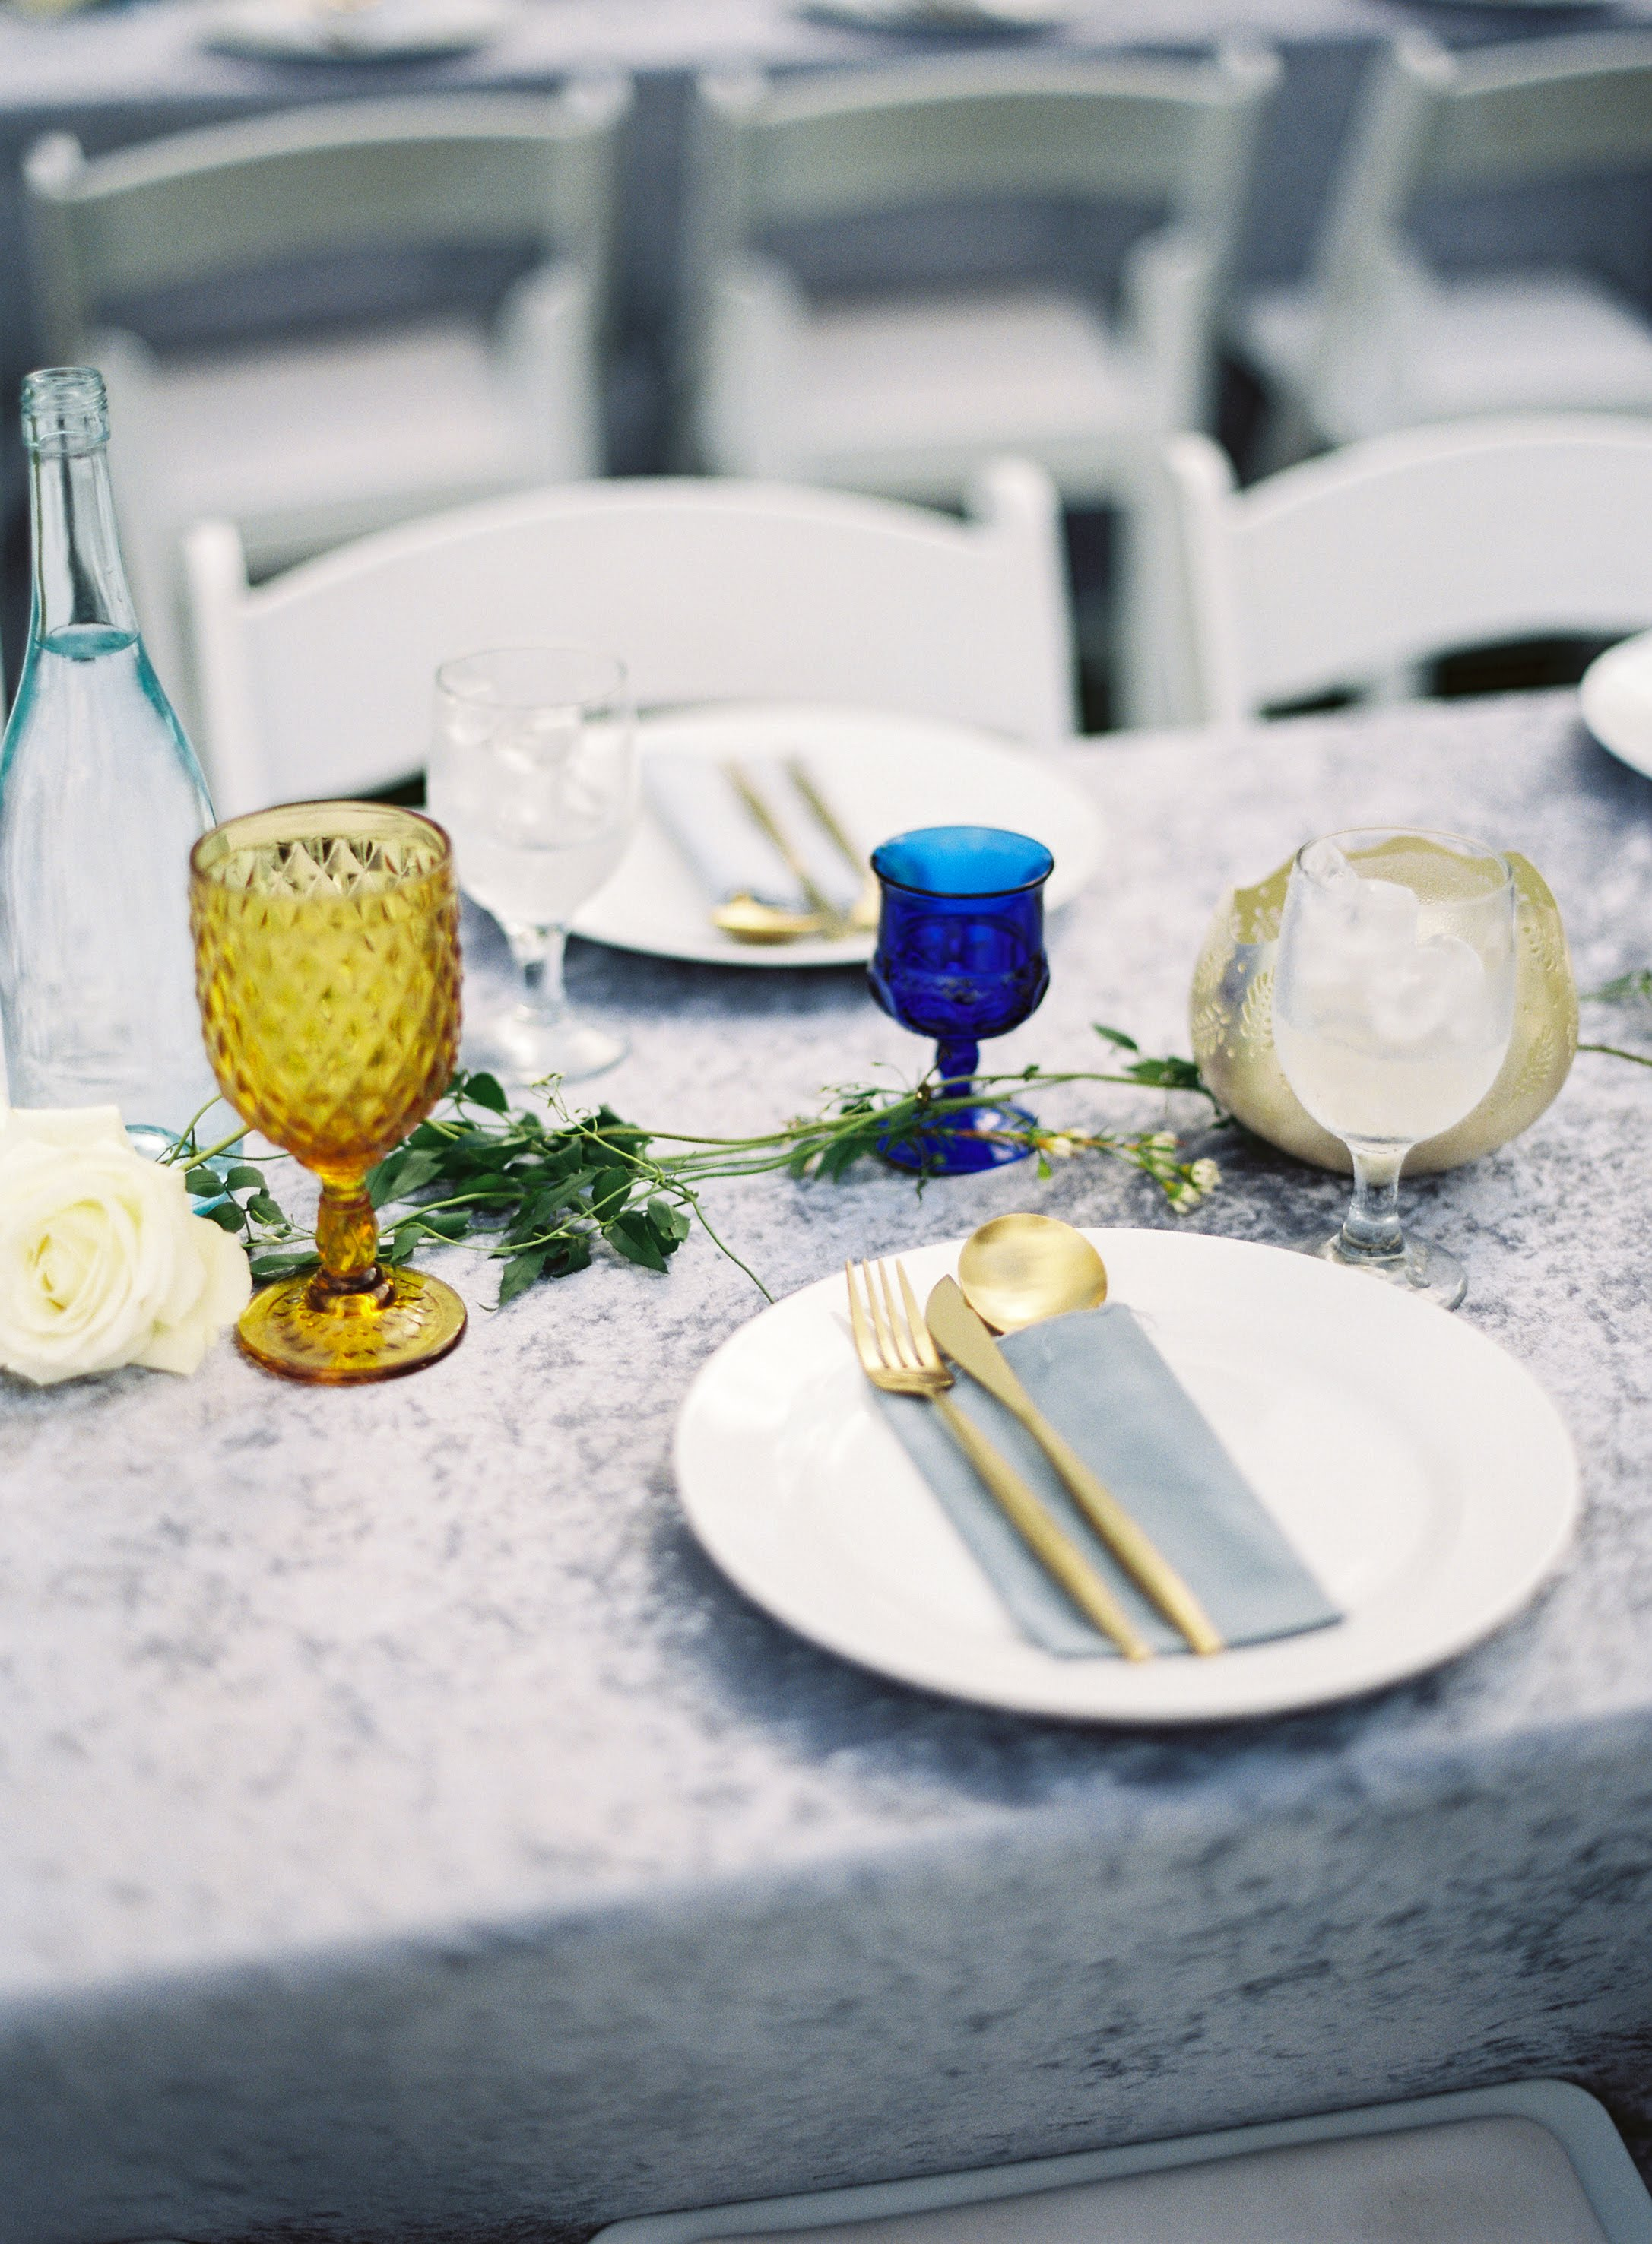 Up close shot of table settings and glasses